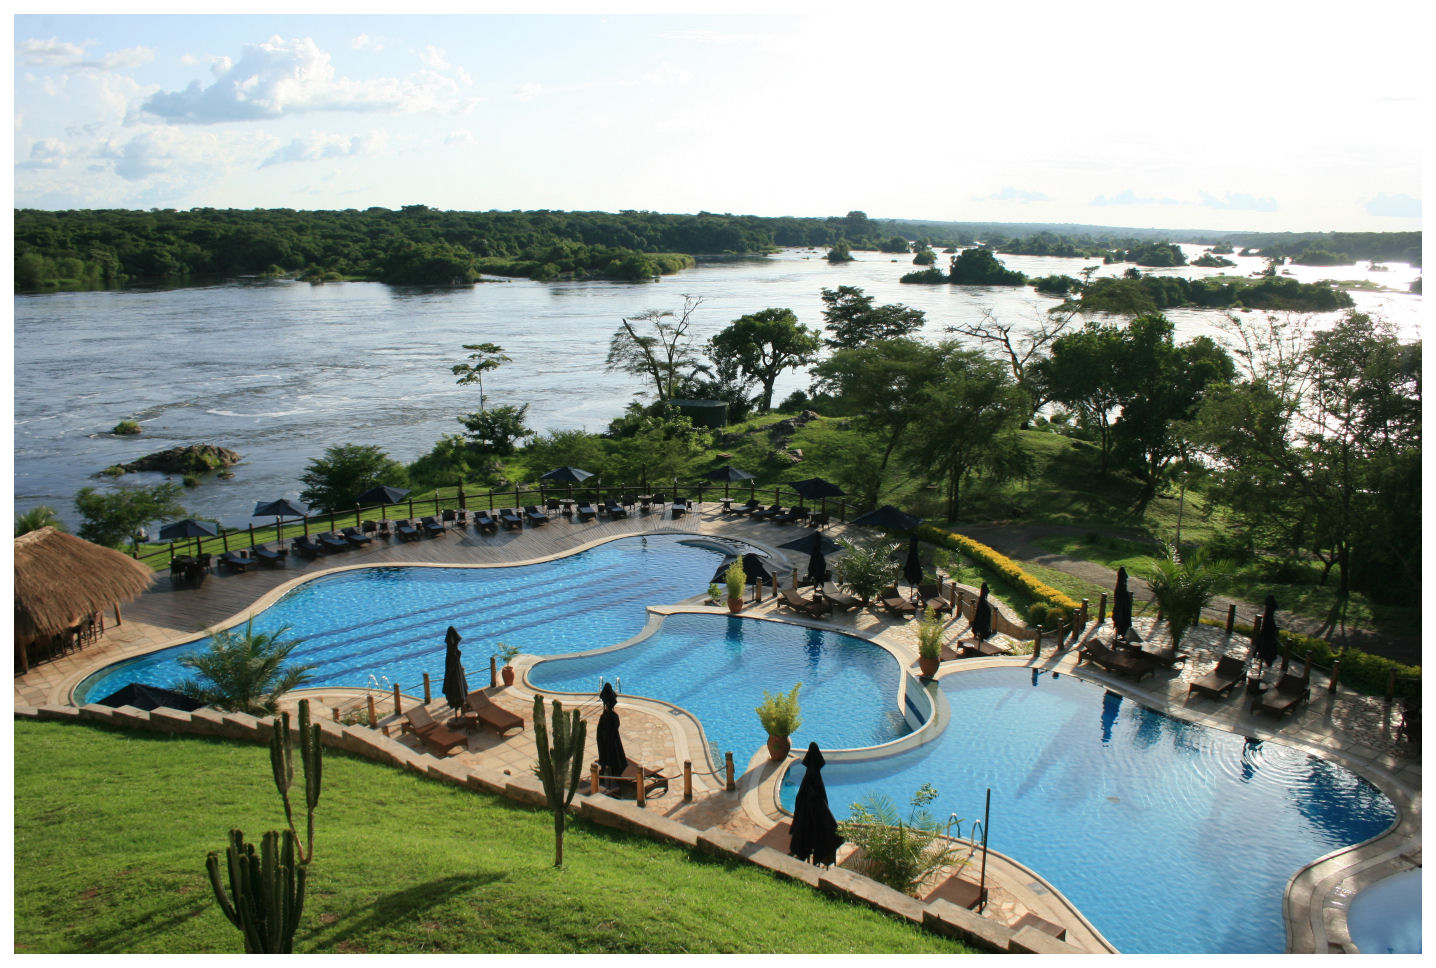 Femme hub top 7 hotel swimming pool views in east africa for Knebel design pool ug